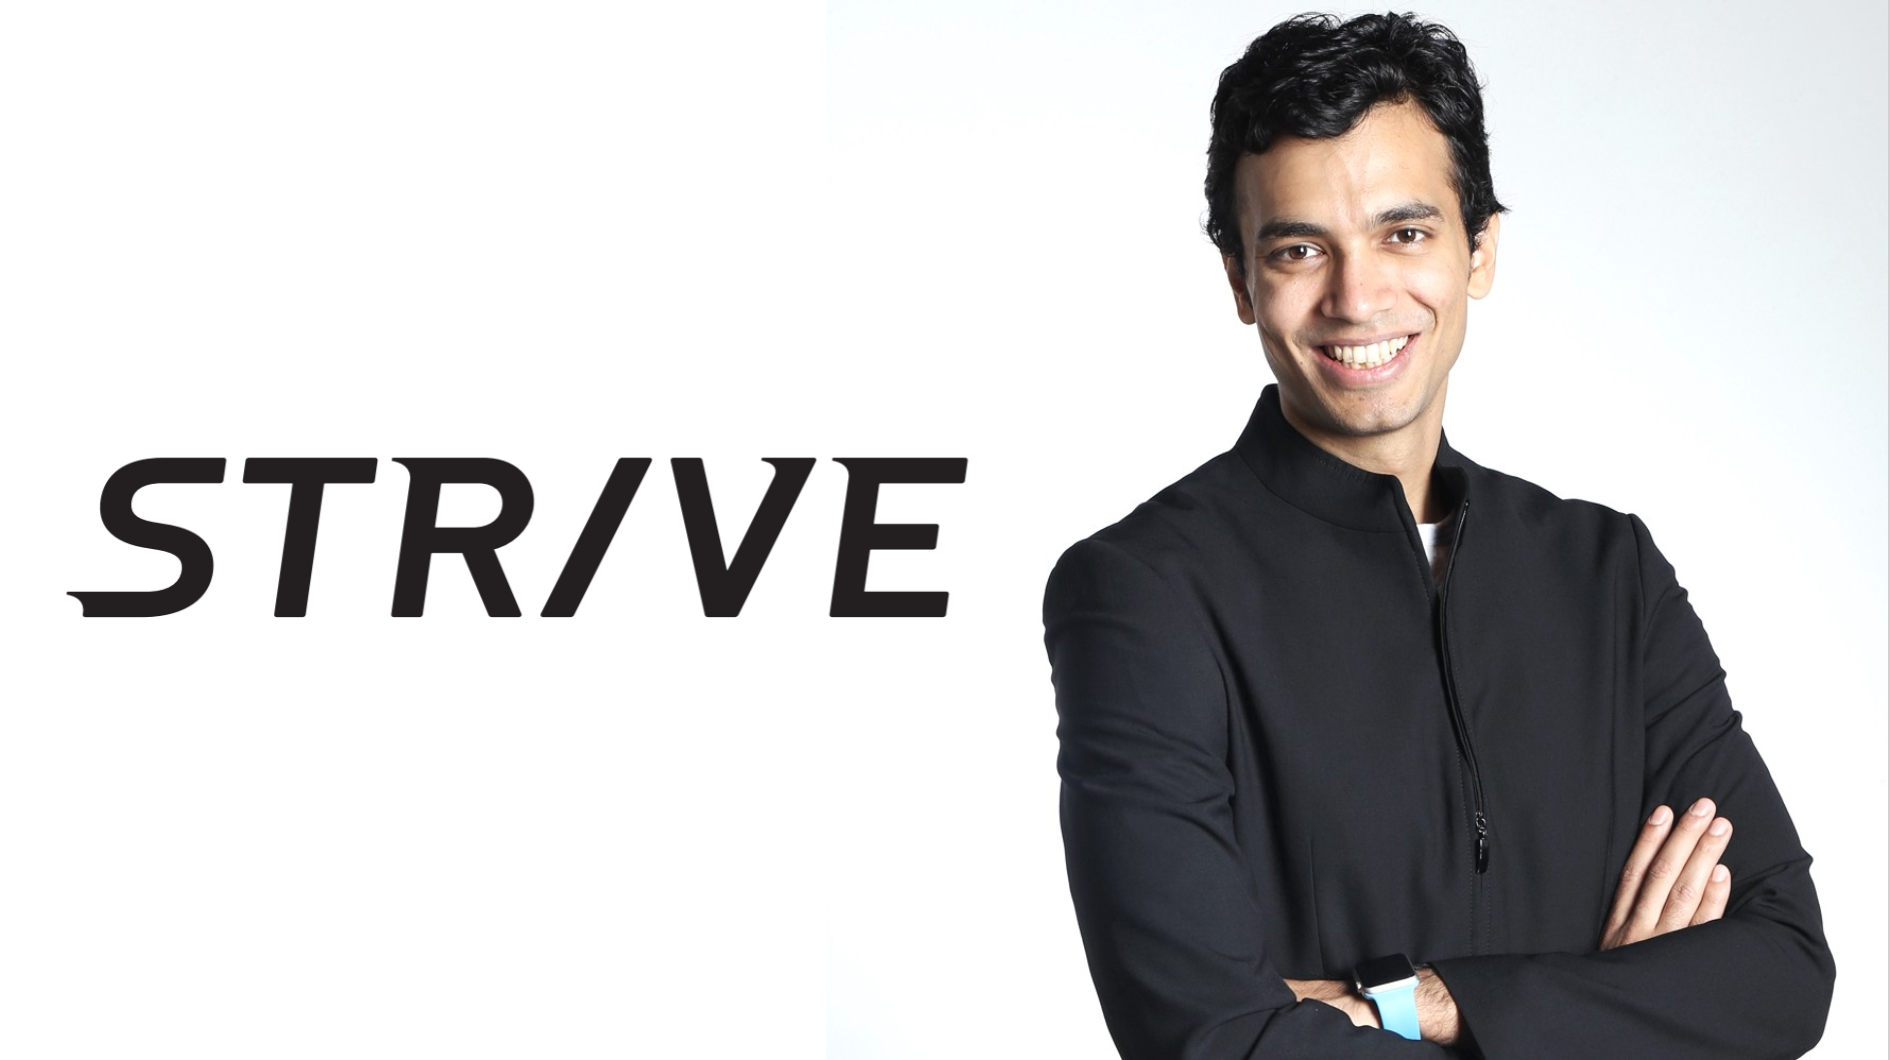 Meet the VCs with Nikhil Kapur, STRIVE